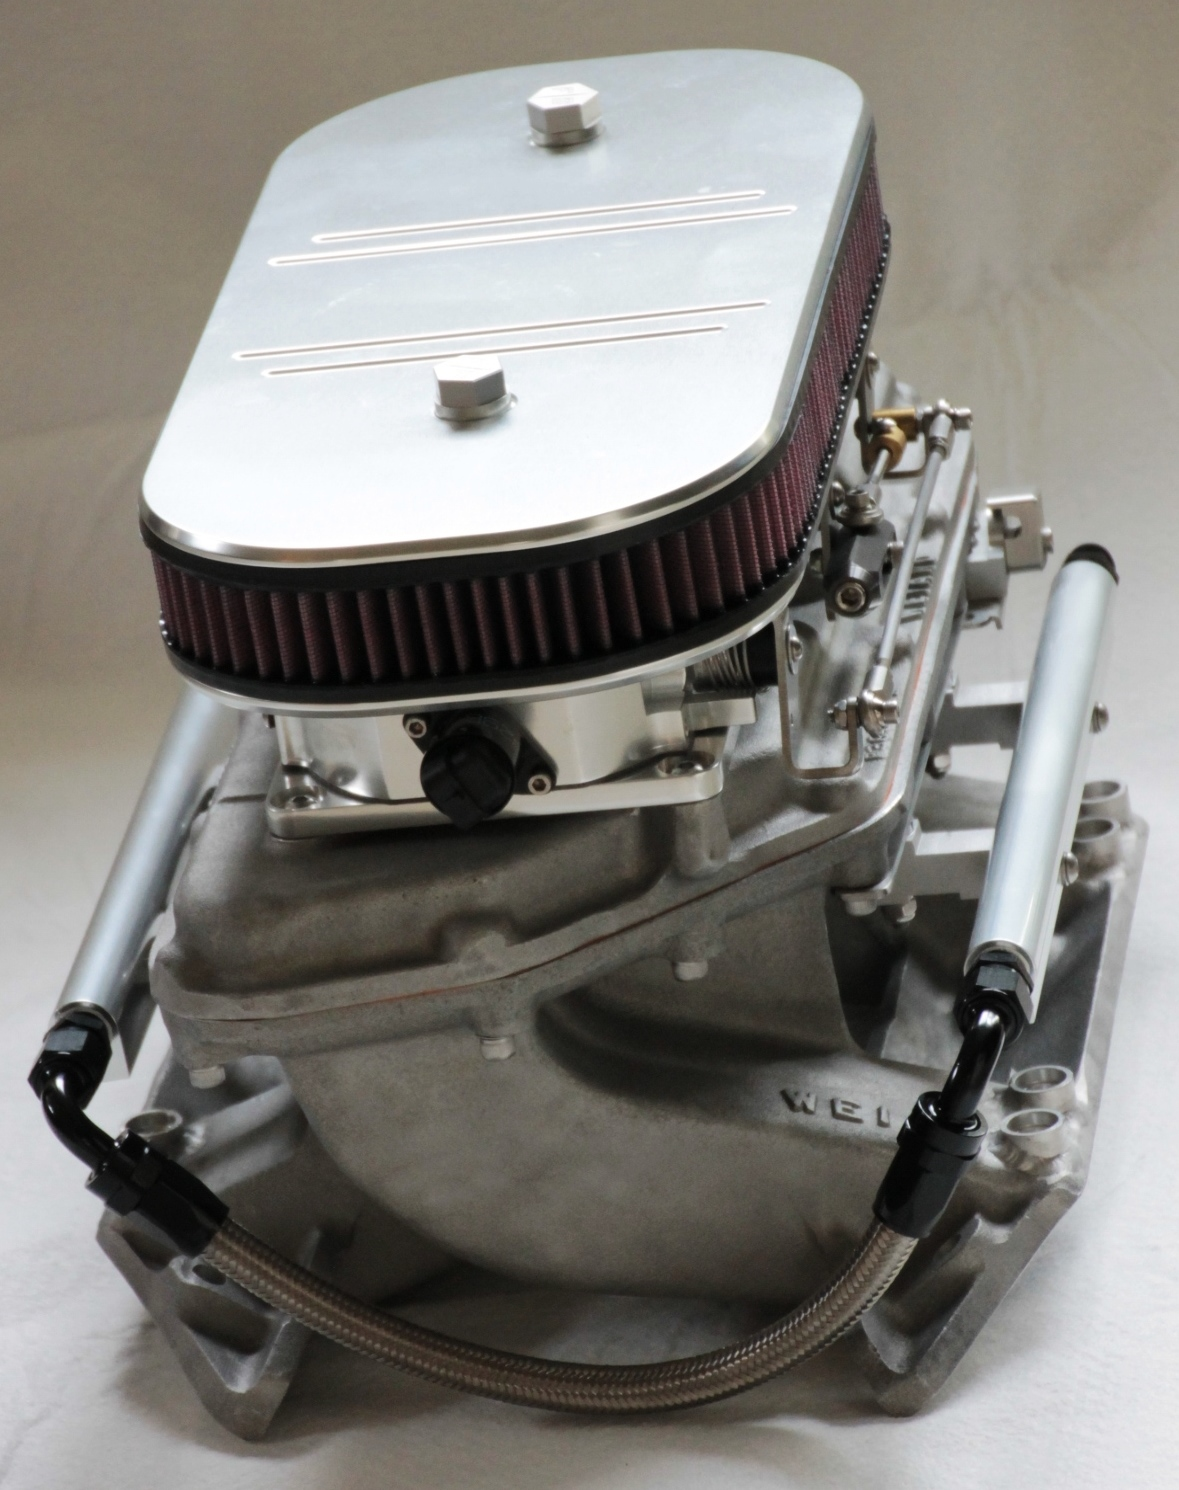 weiand with air cleaner.jpg